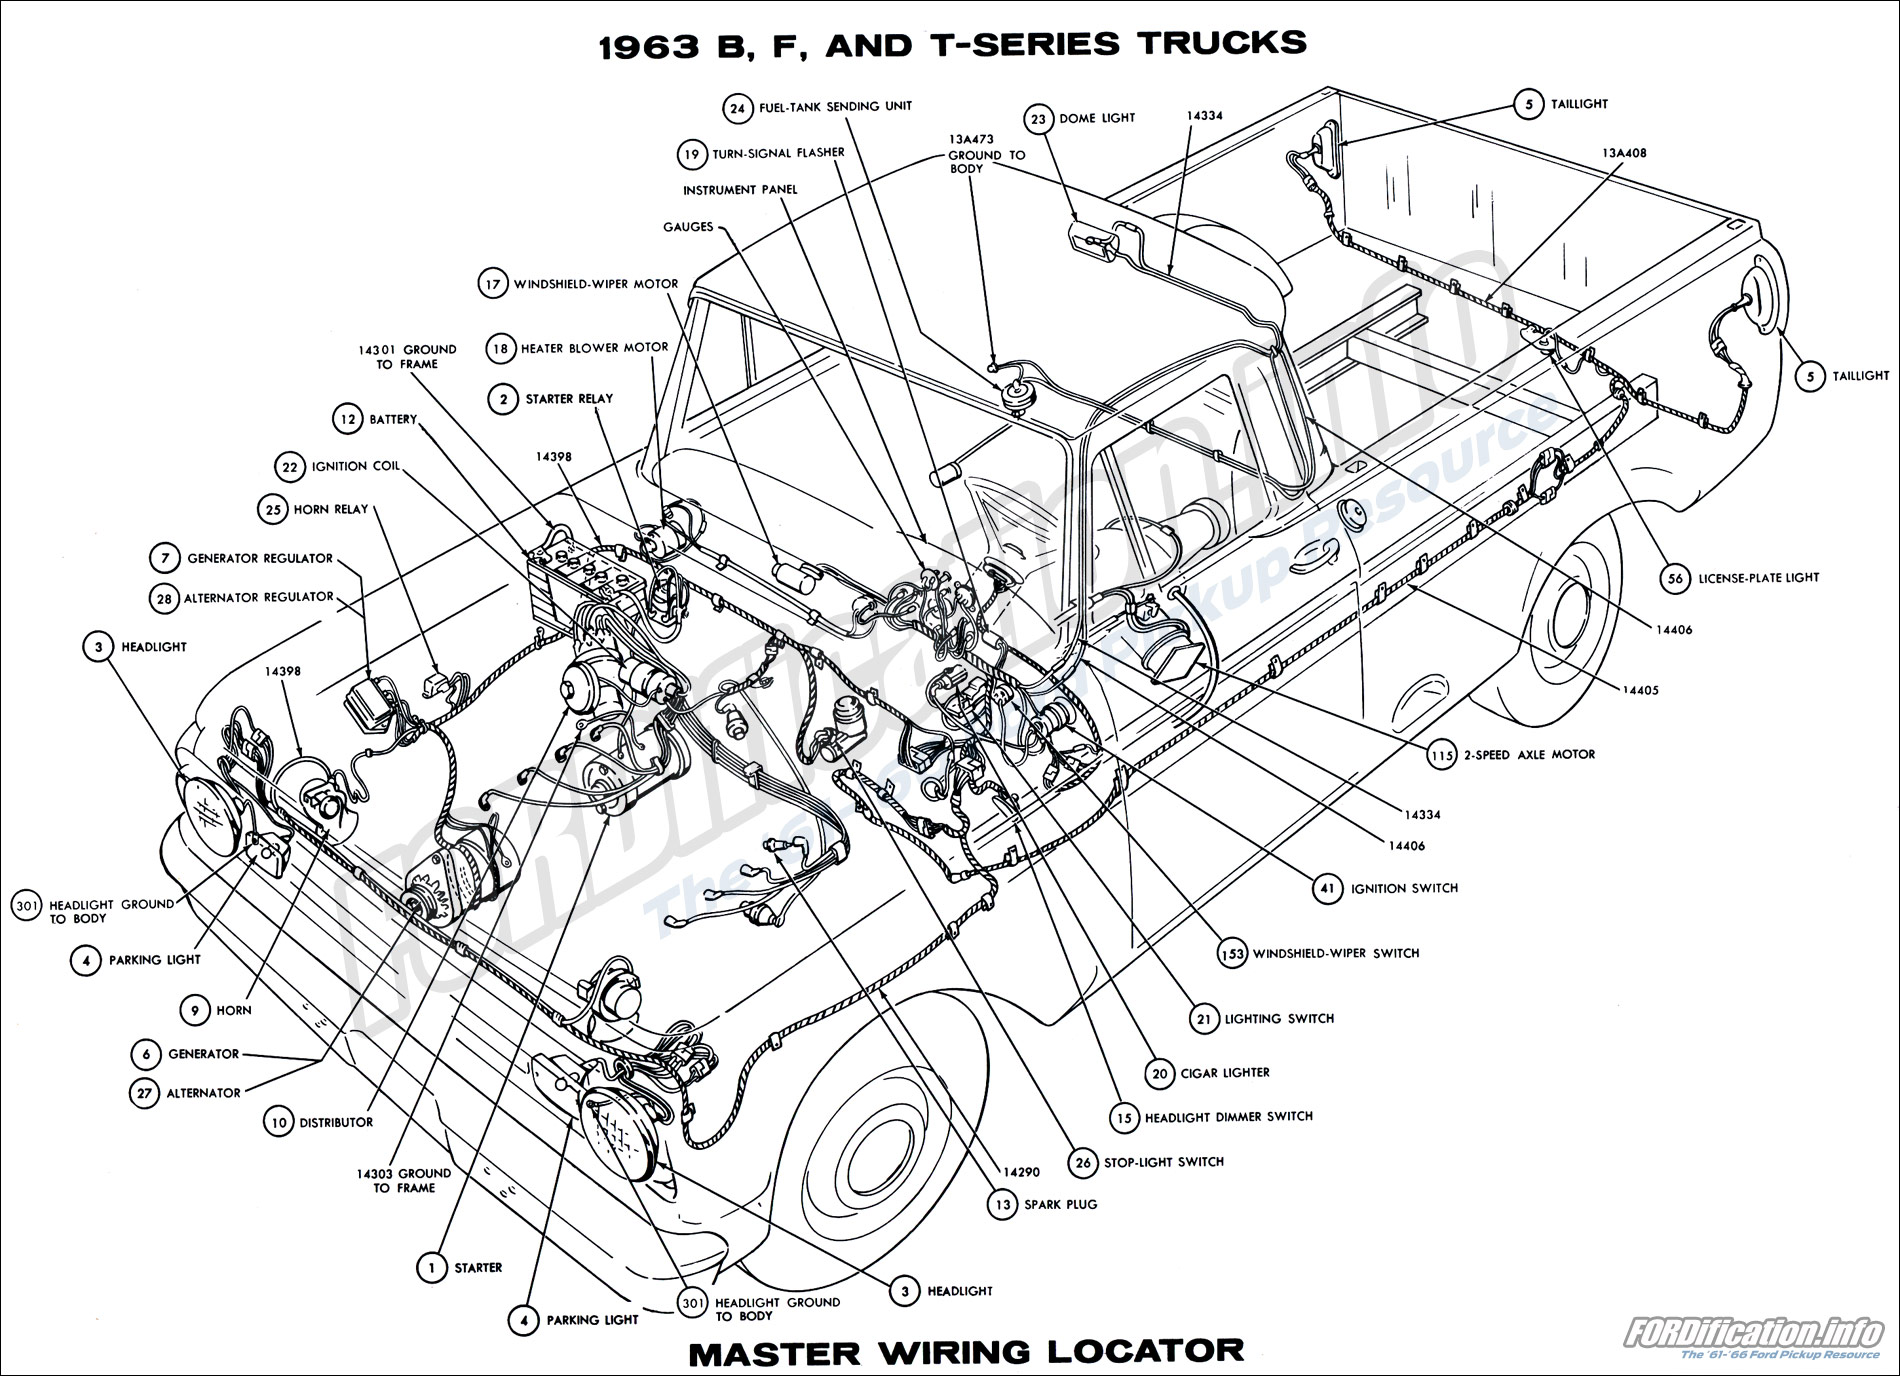 1971 Ford F 250 Ignition Wiring Schematic Opinions About Omc Diagram For 1963 F100 Online Schematics Rh Delvato Co Truck Switch